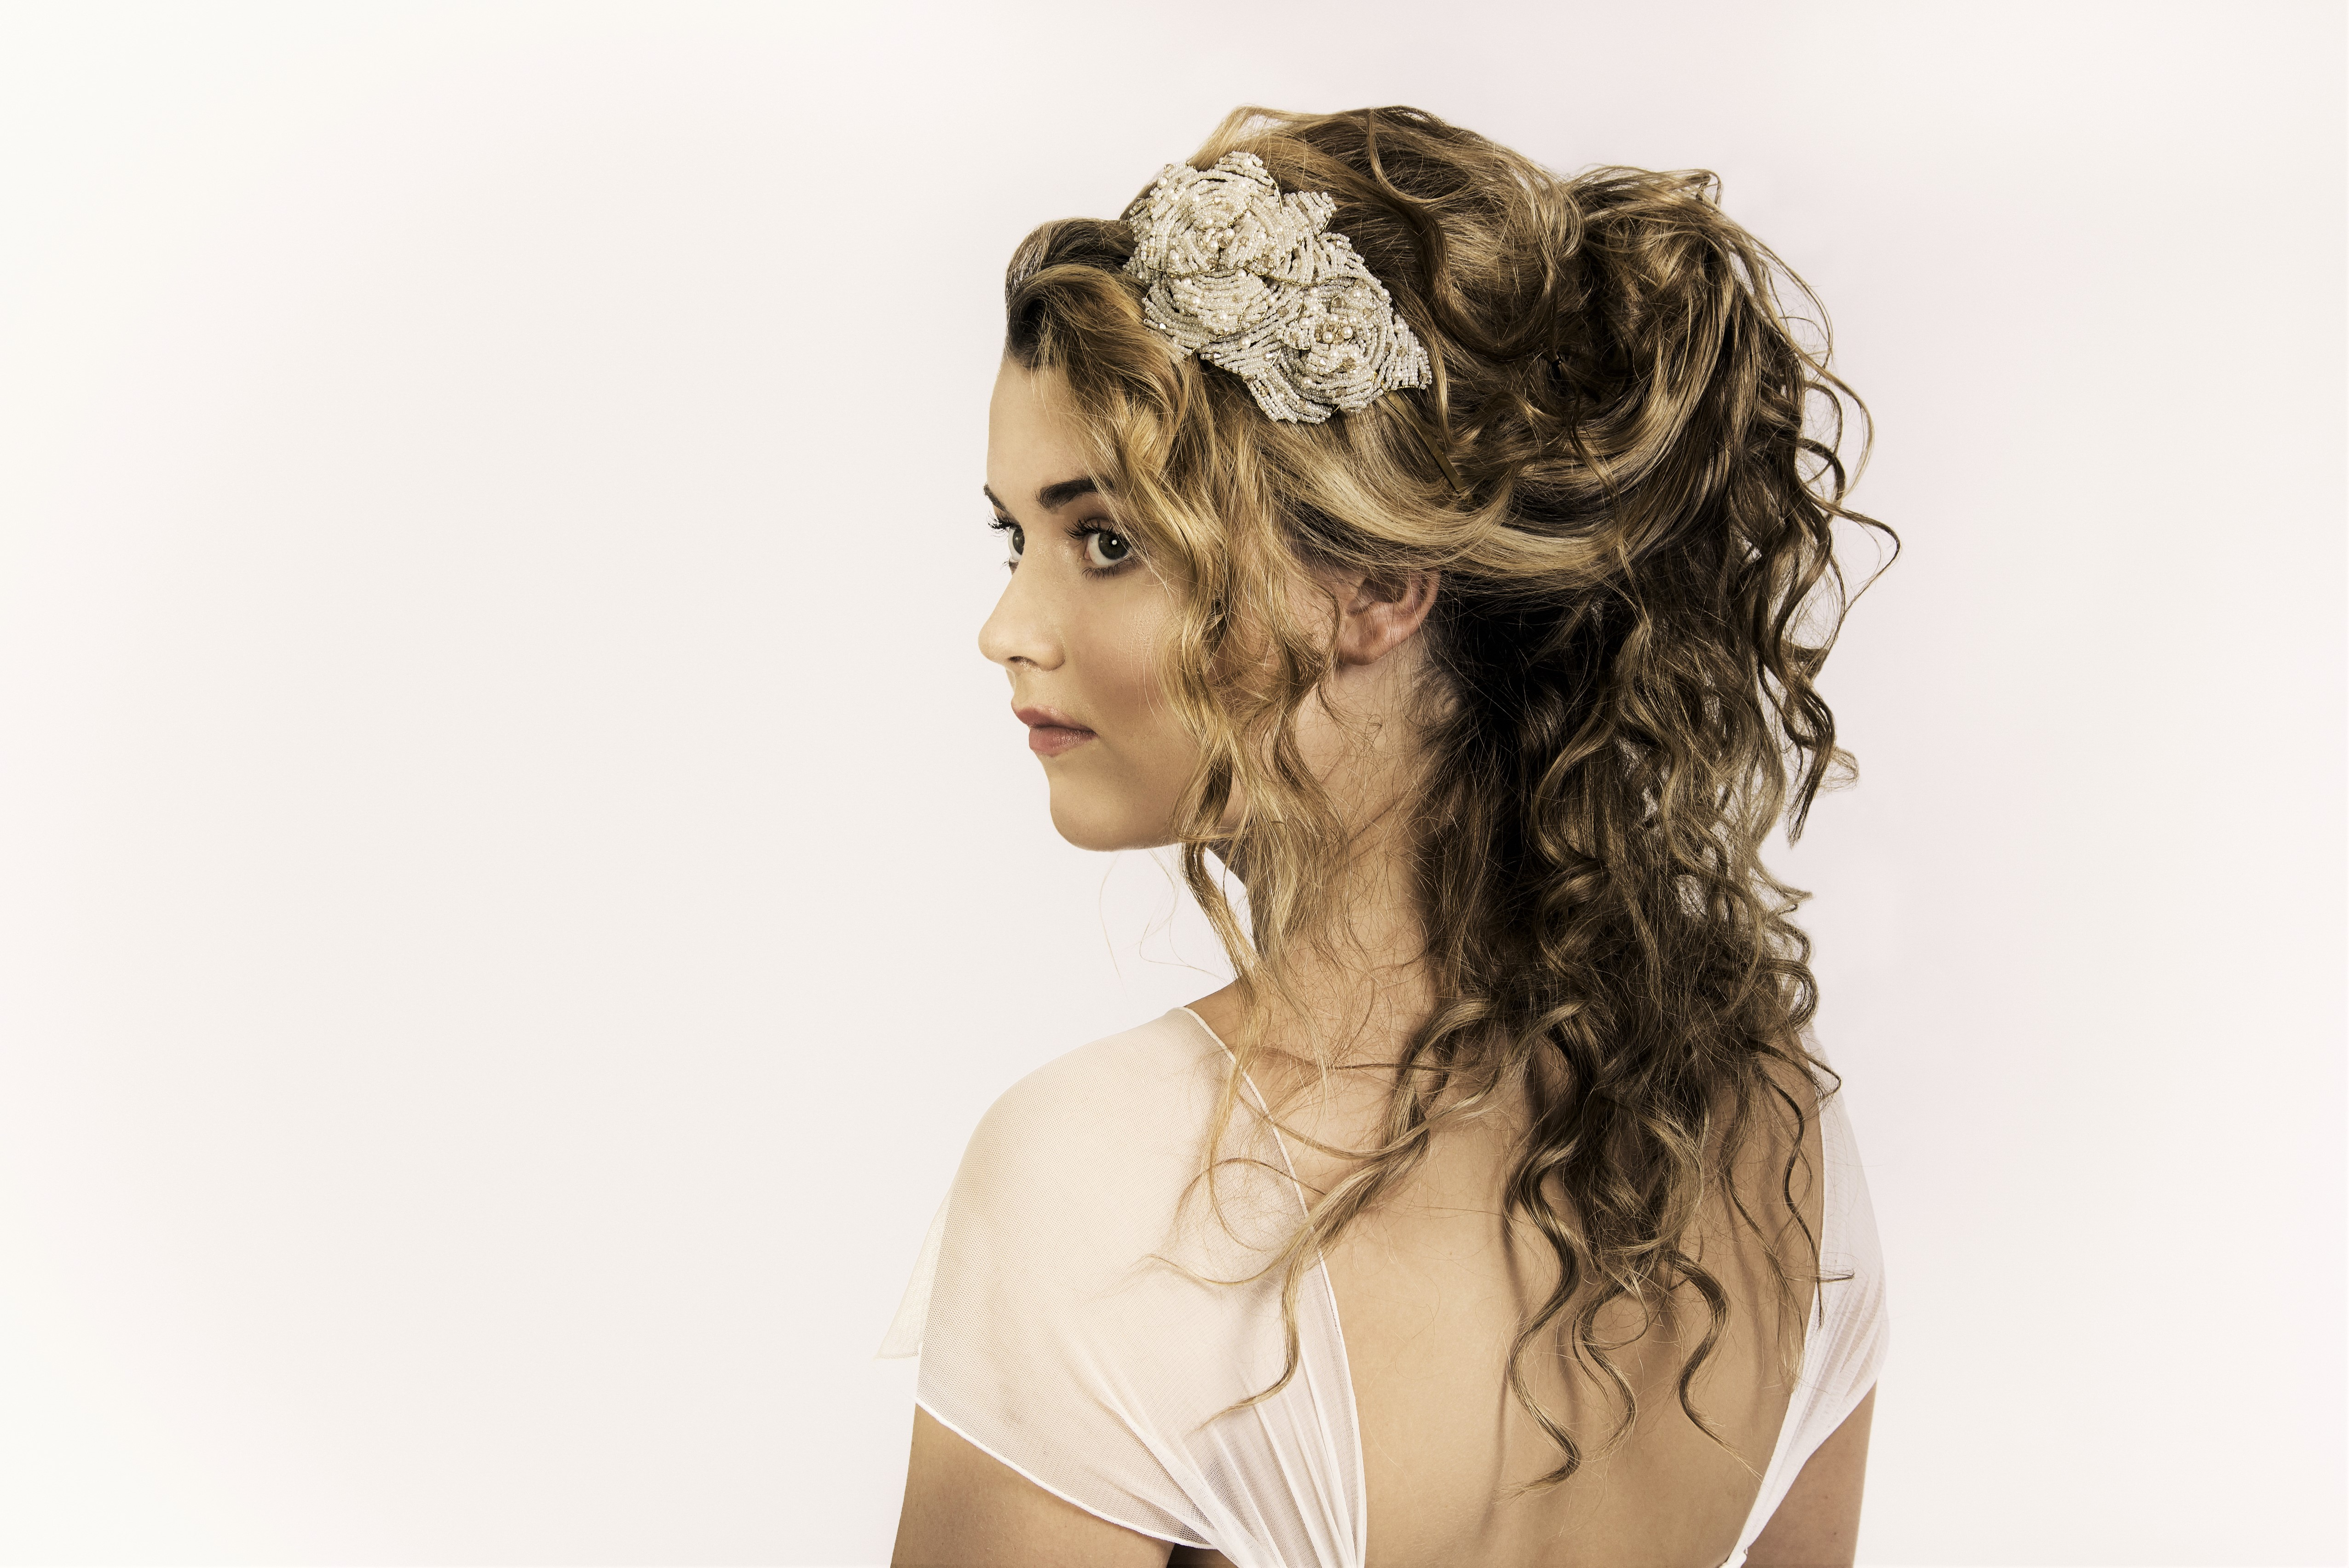 Hair Archives - Coco Bella Bride